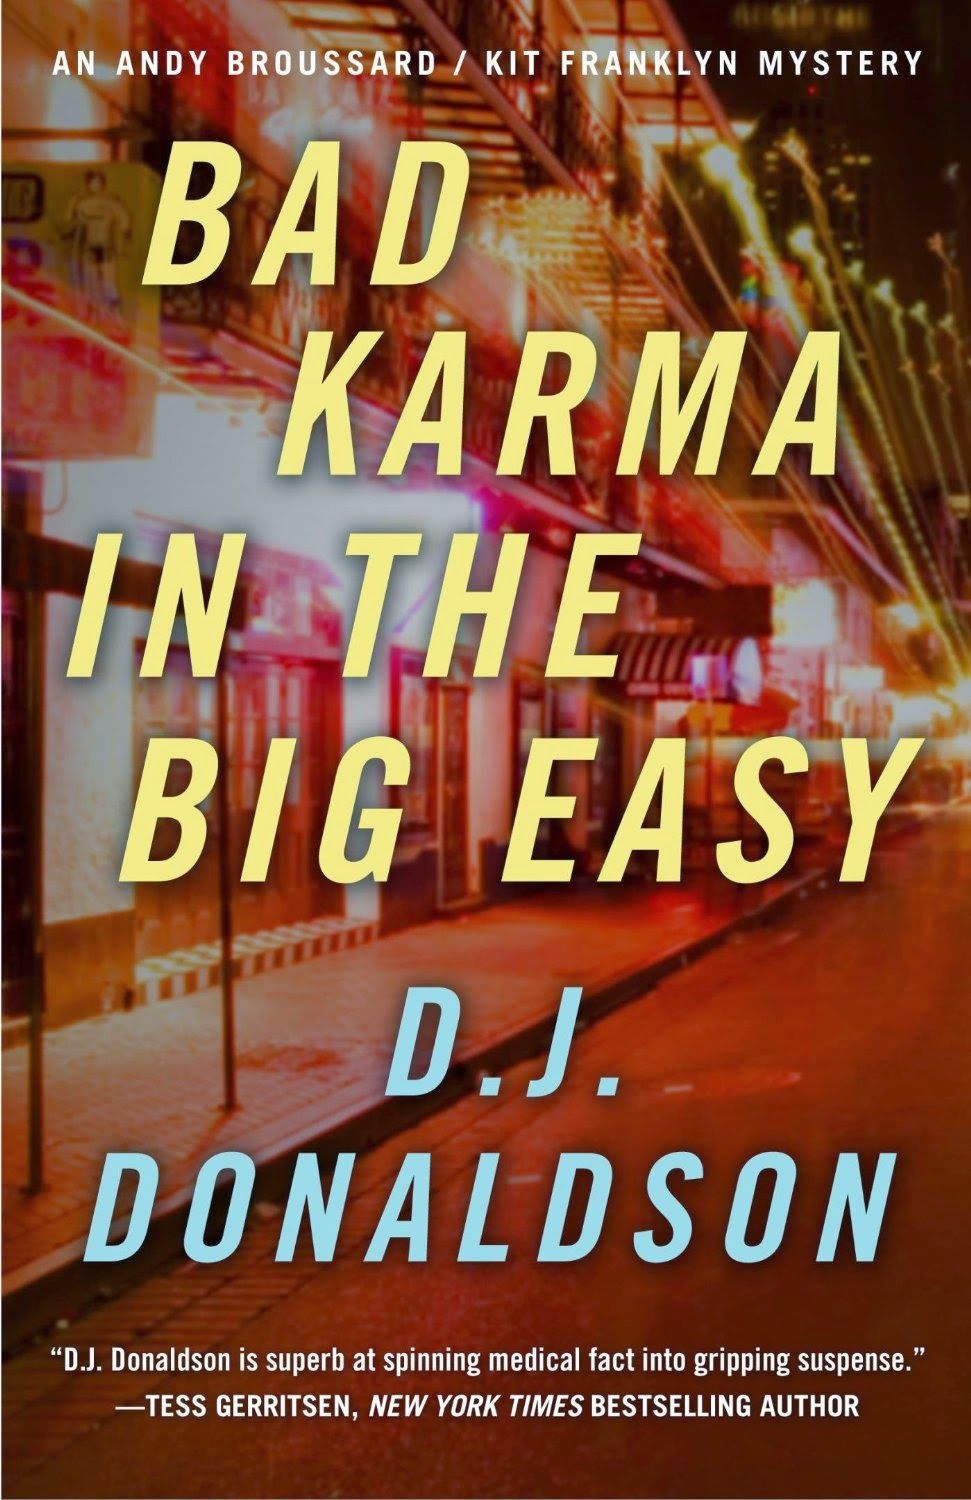 Book Reader's Heaven: Bad Karma In The Big Easy Brings Back Favorite ME, Andy Broussard! Have You Met Him Yet?!